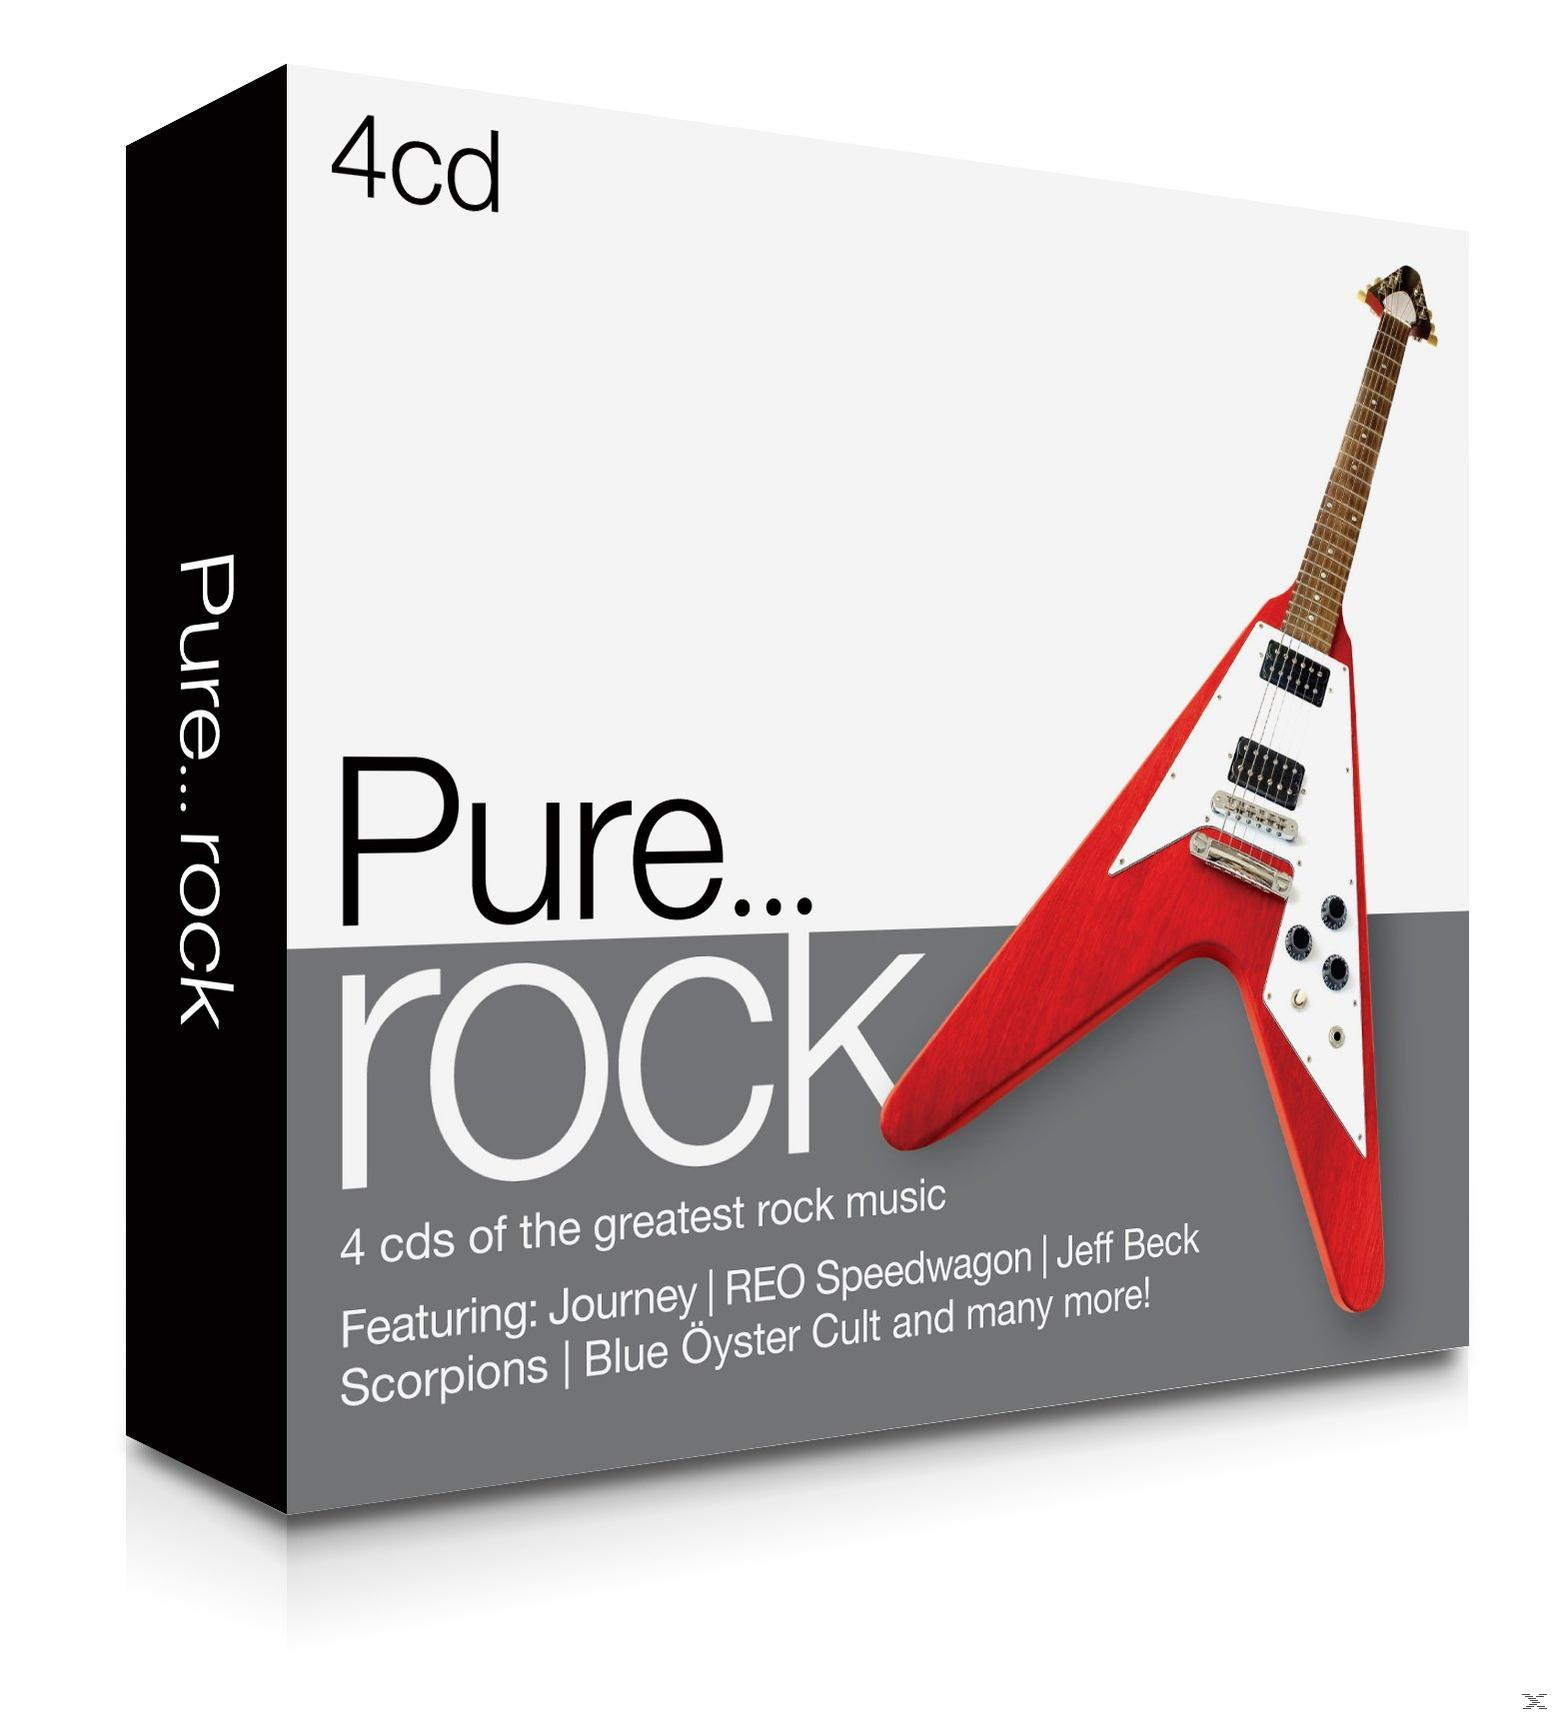 PURE... ROCK (4CD)